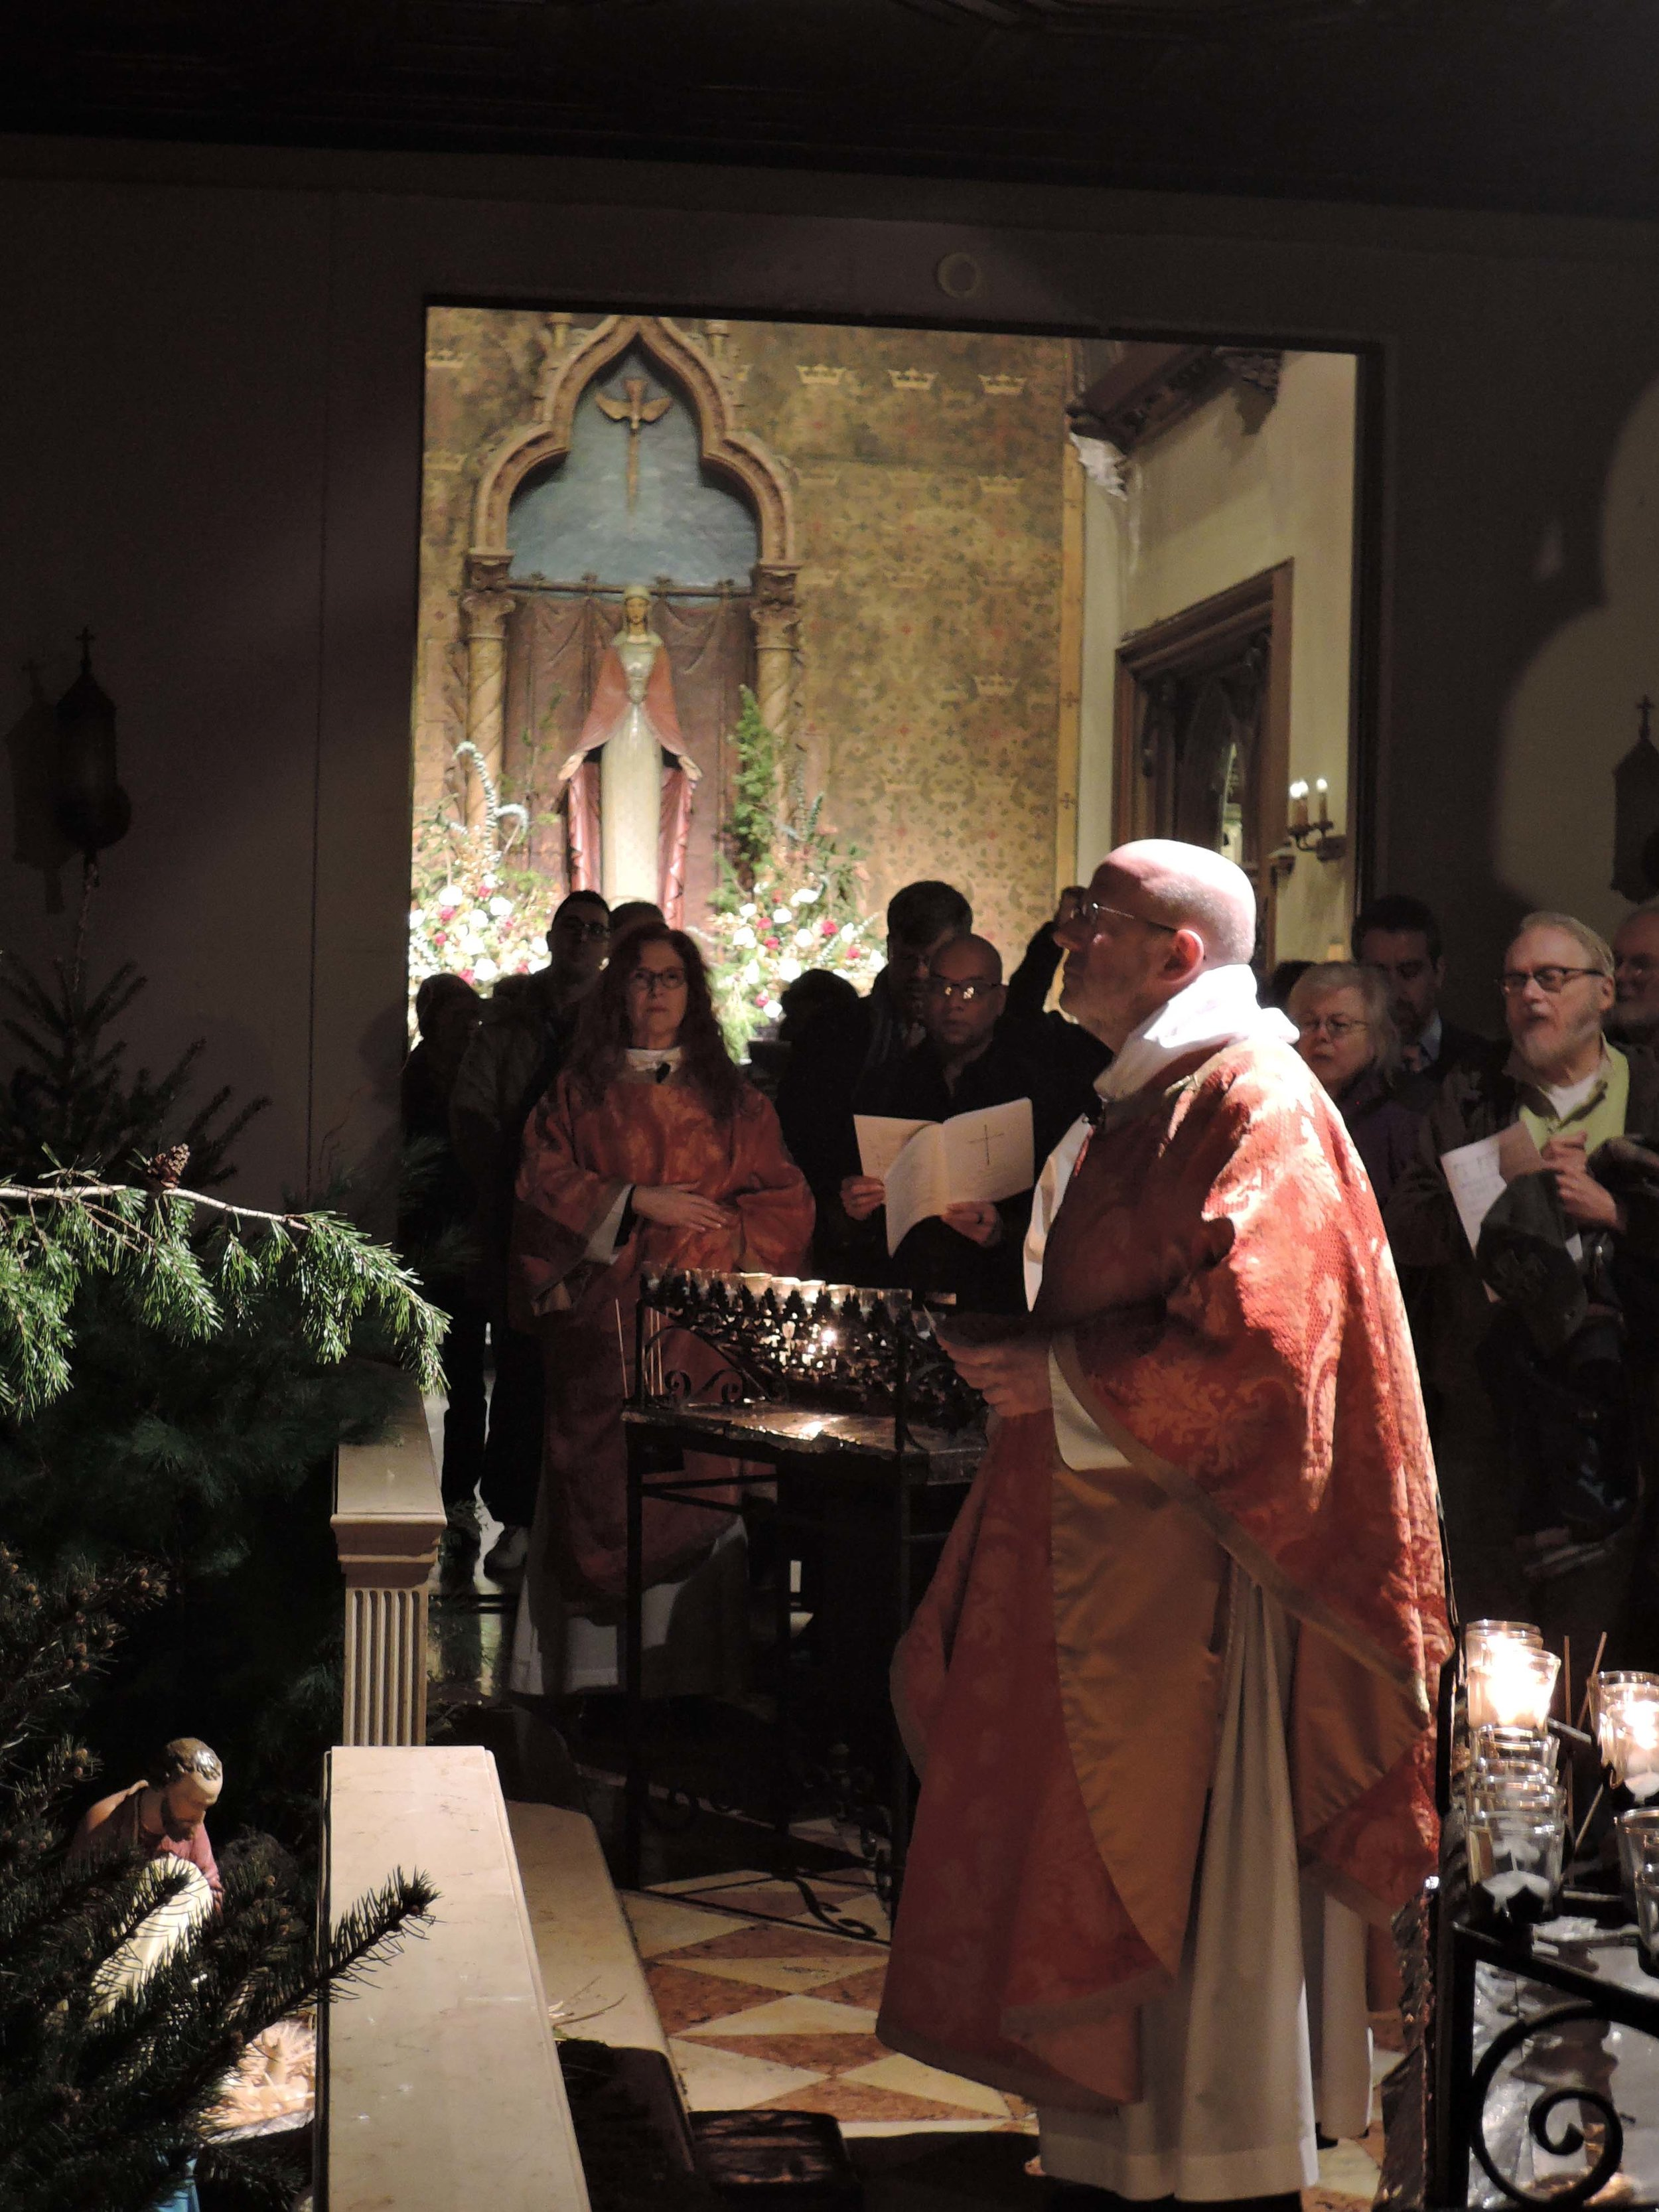 At the end of the Solemn Mass of Christmas Day, the congregation processes to the Creche for the Angelus.